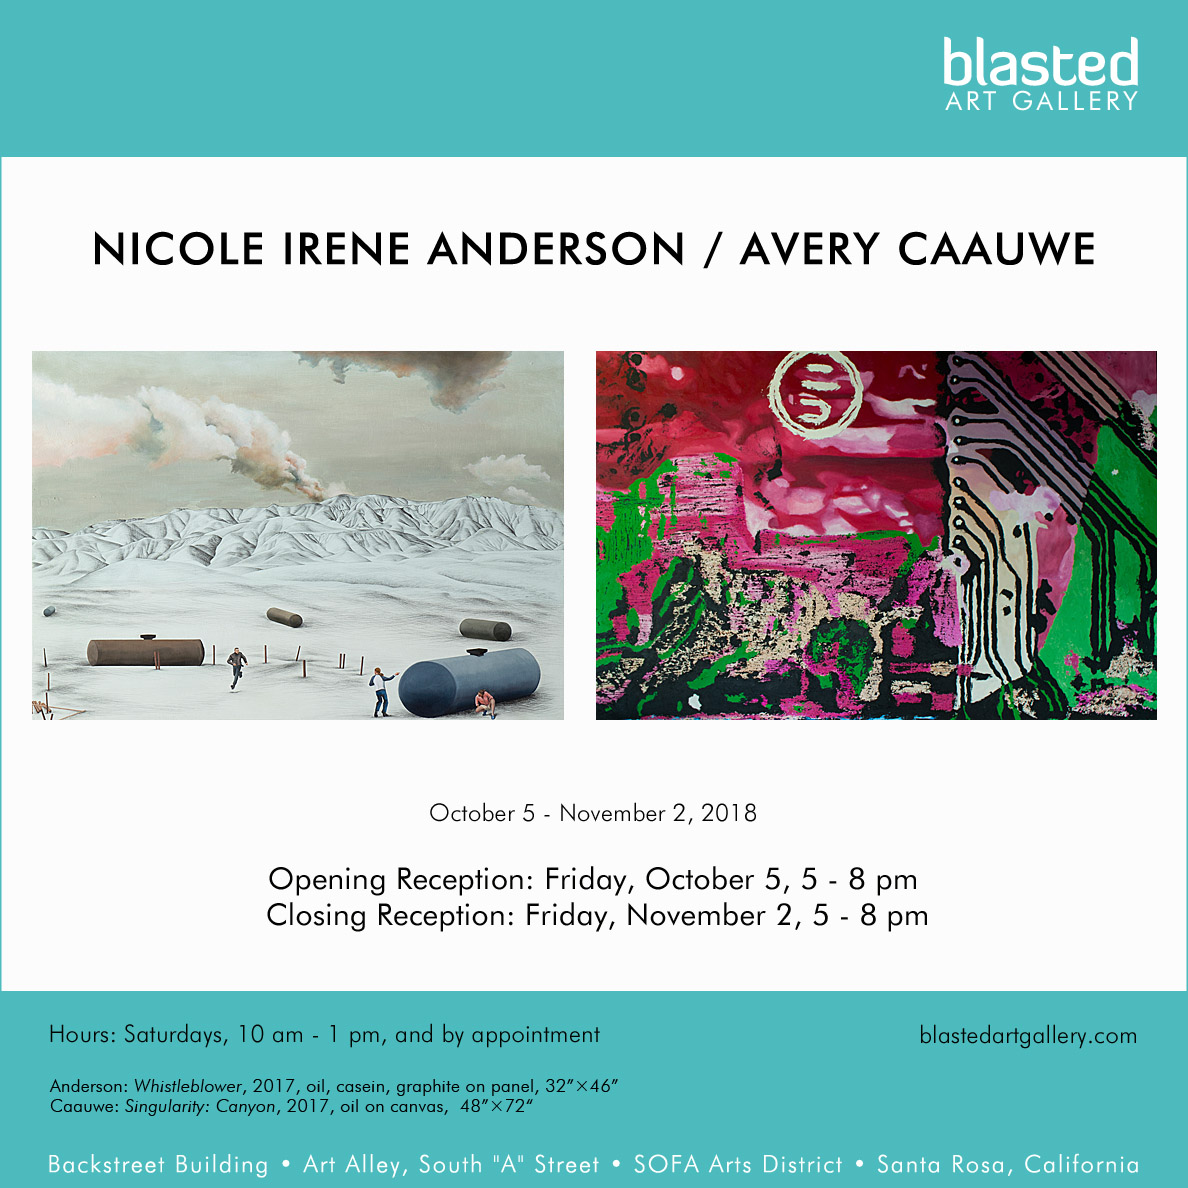 blasted-art-gallery_nicole-irene-anderson_avery-caauwe_opening-invitation_PROOF01.jpg